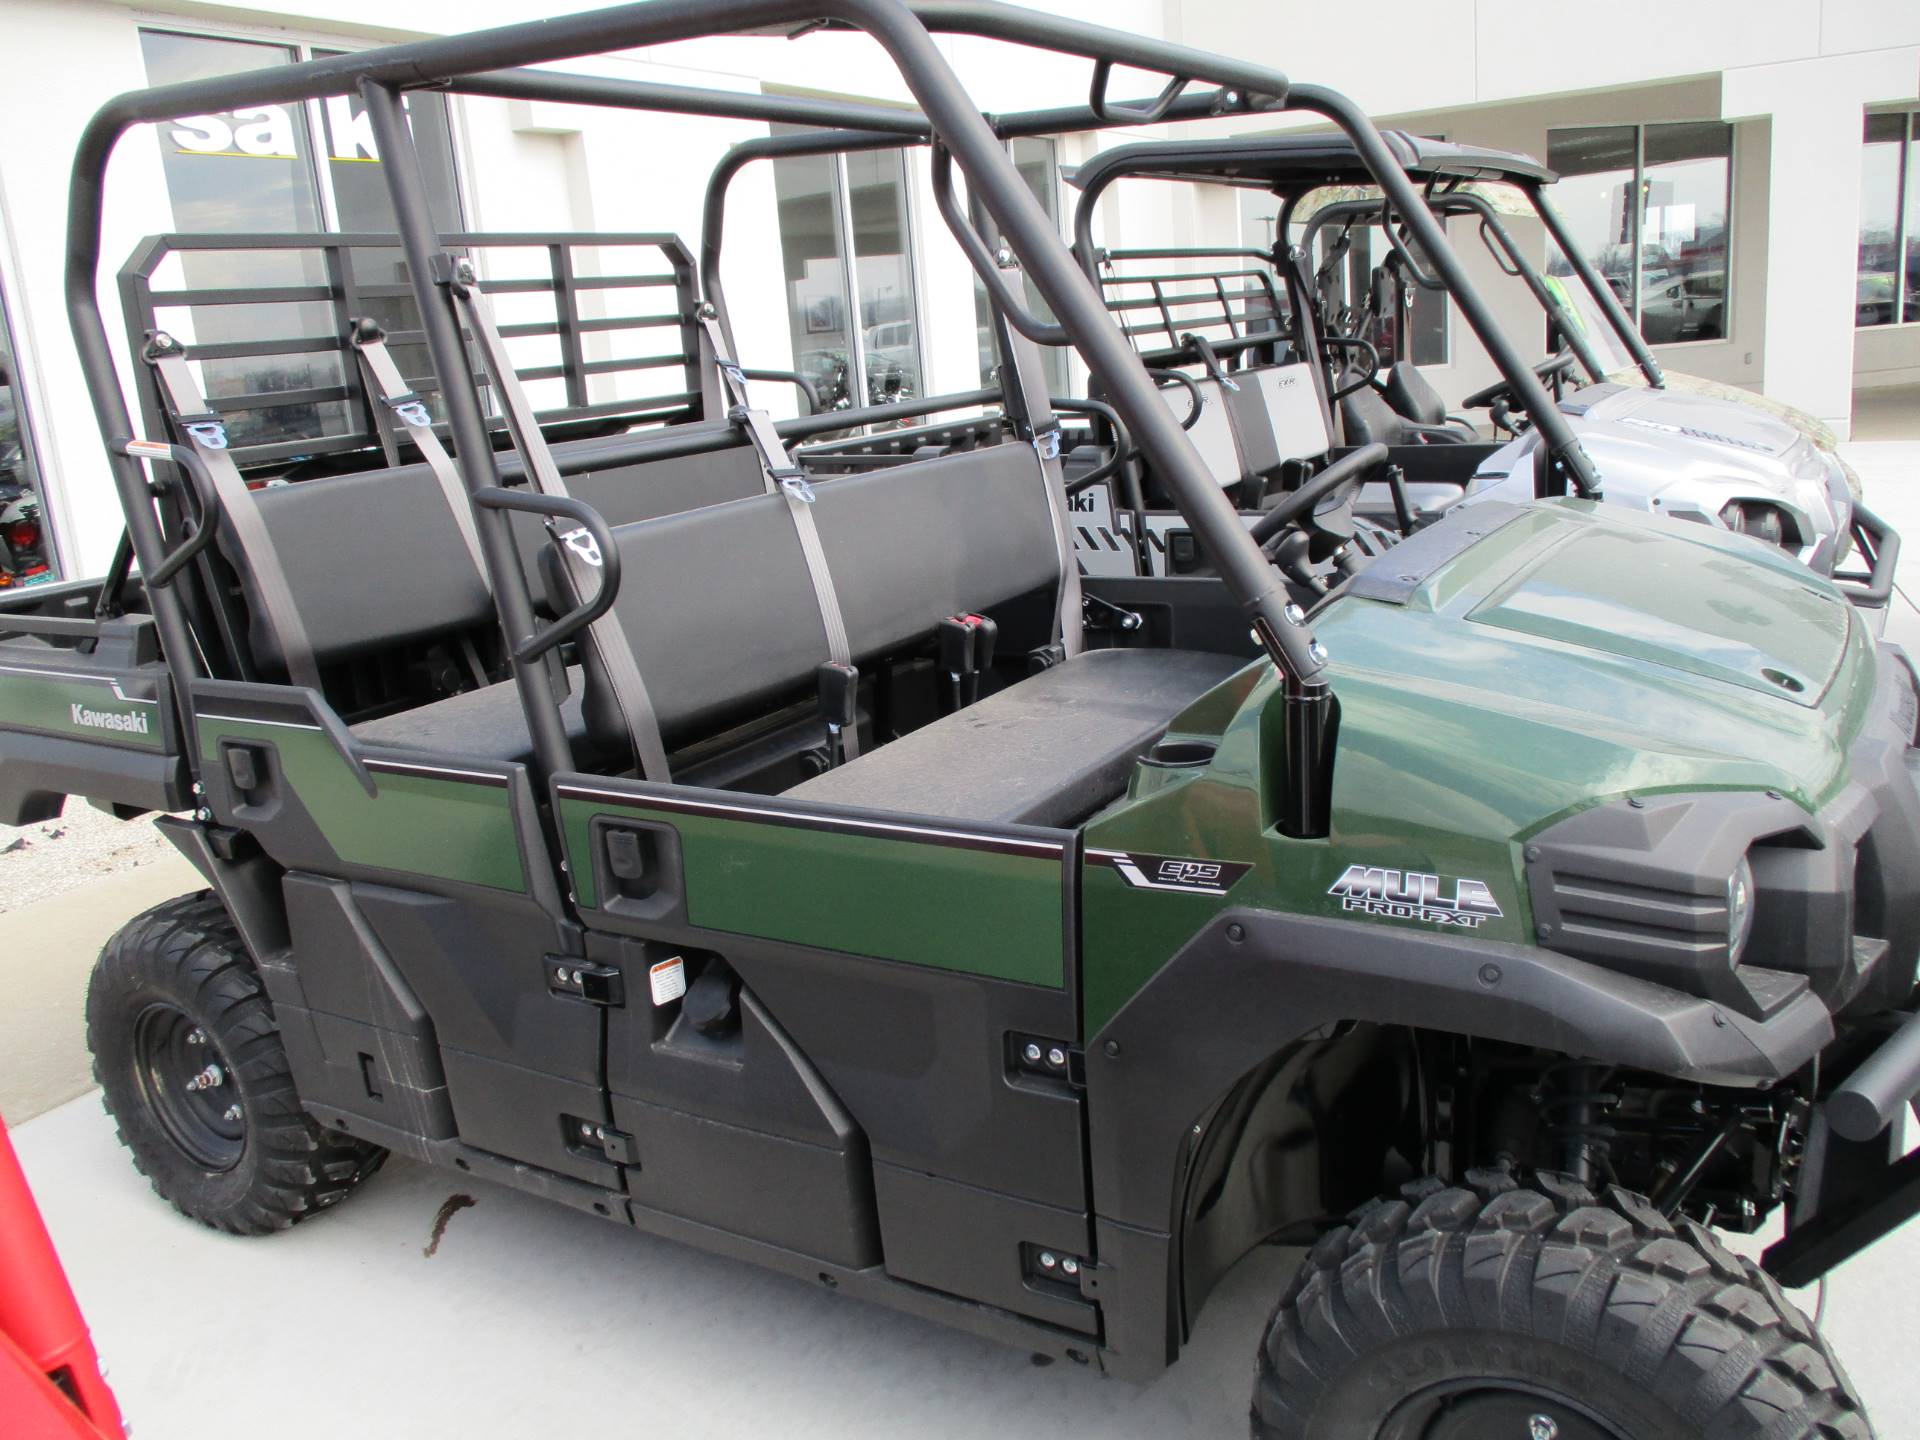 2017 Kawasaki mule pro fxt in Highland, Illinois